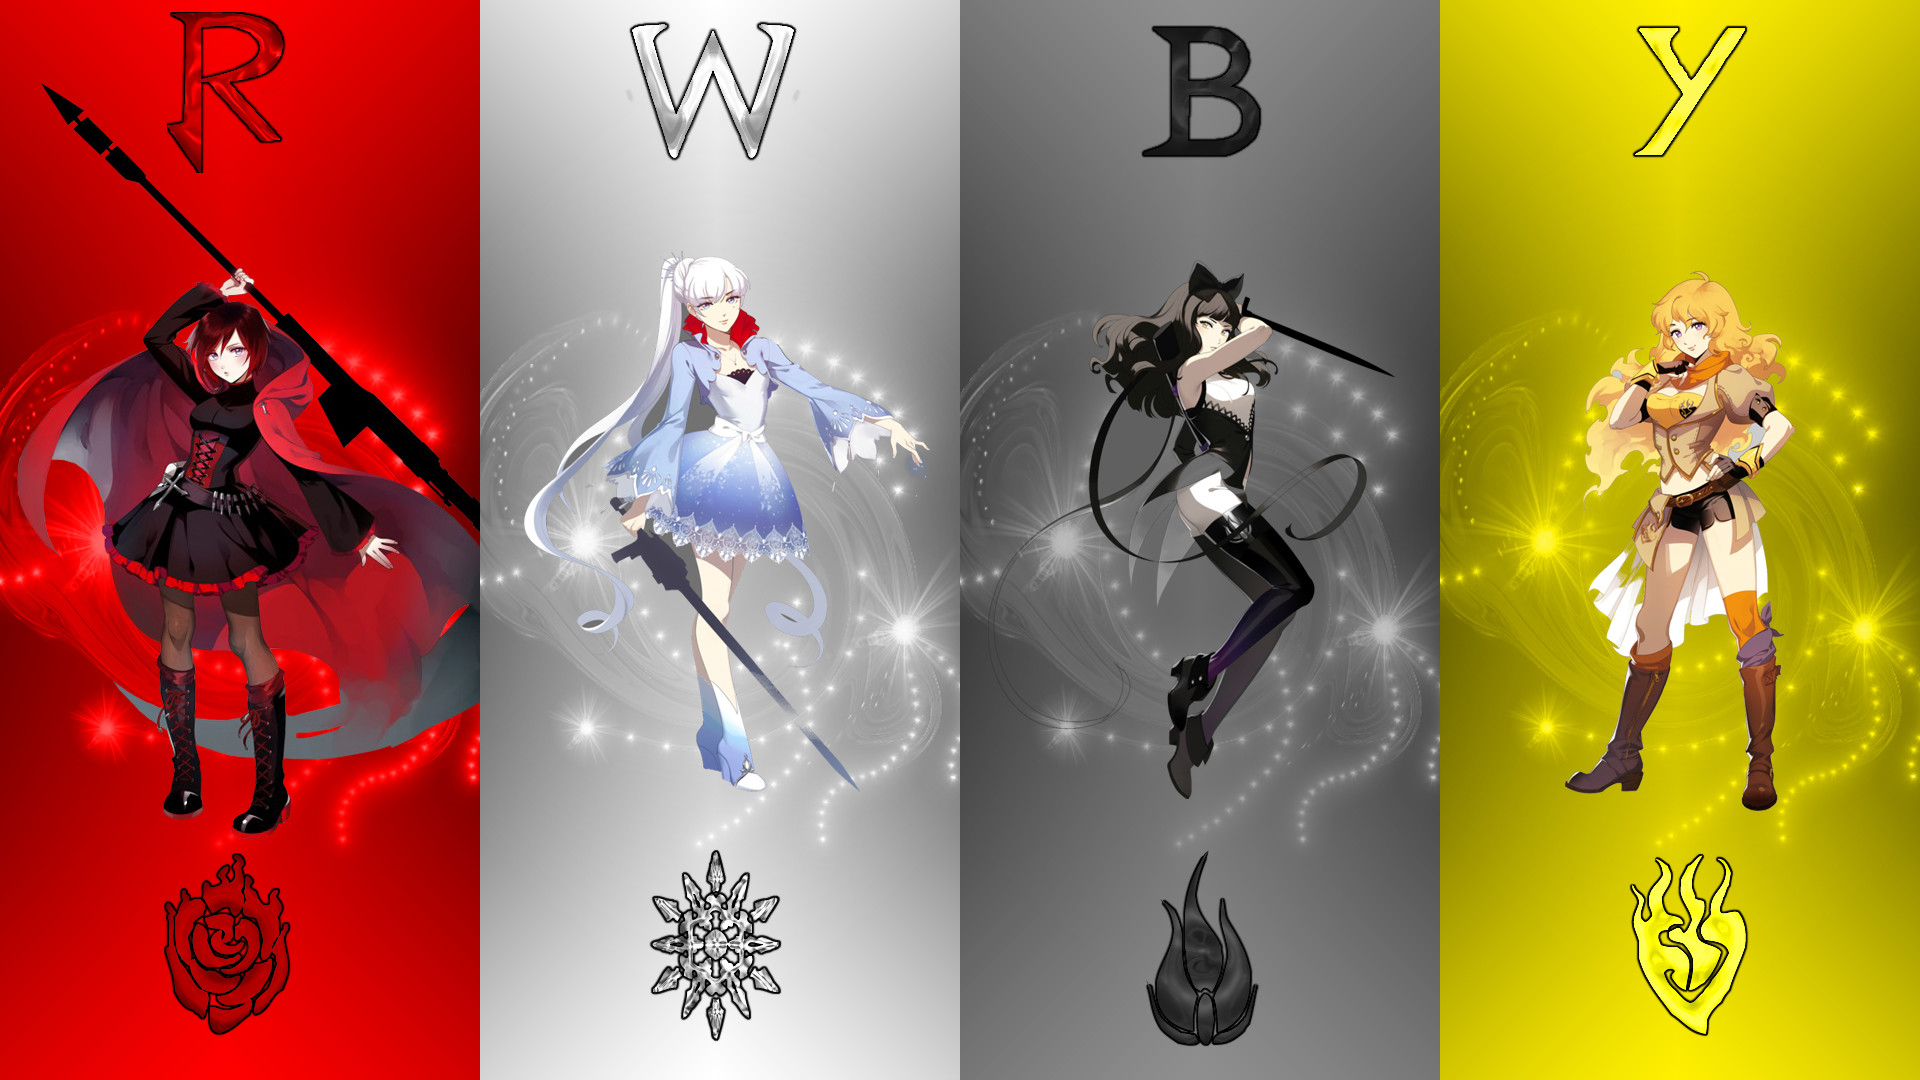 RWBY Ruby Rose Blake Belladonna Yang Xiao Long Weiss Schnee Rooster Teeth  Red Yellow Black White Ice Cartoons …